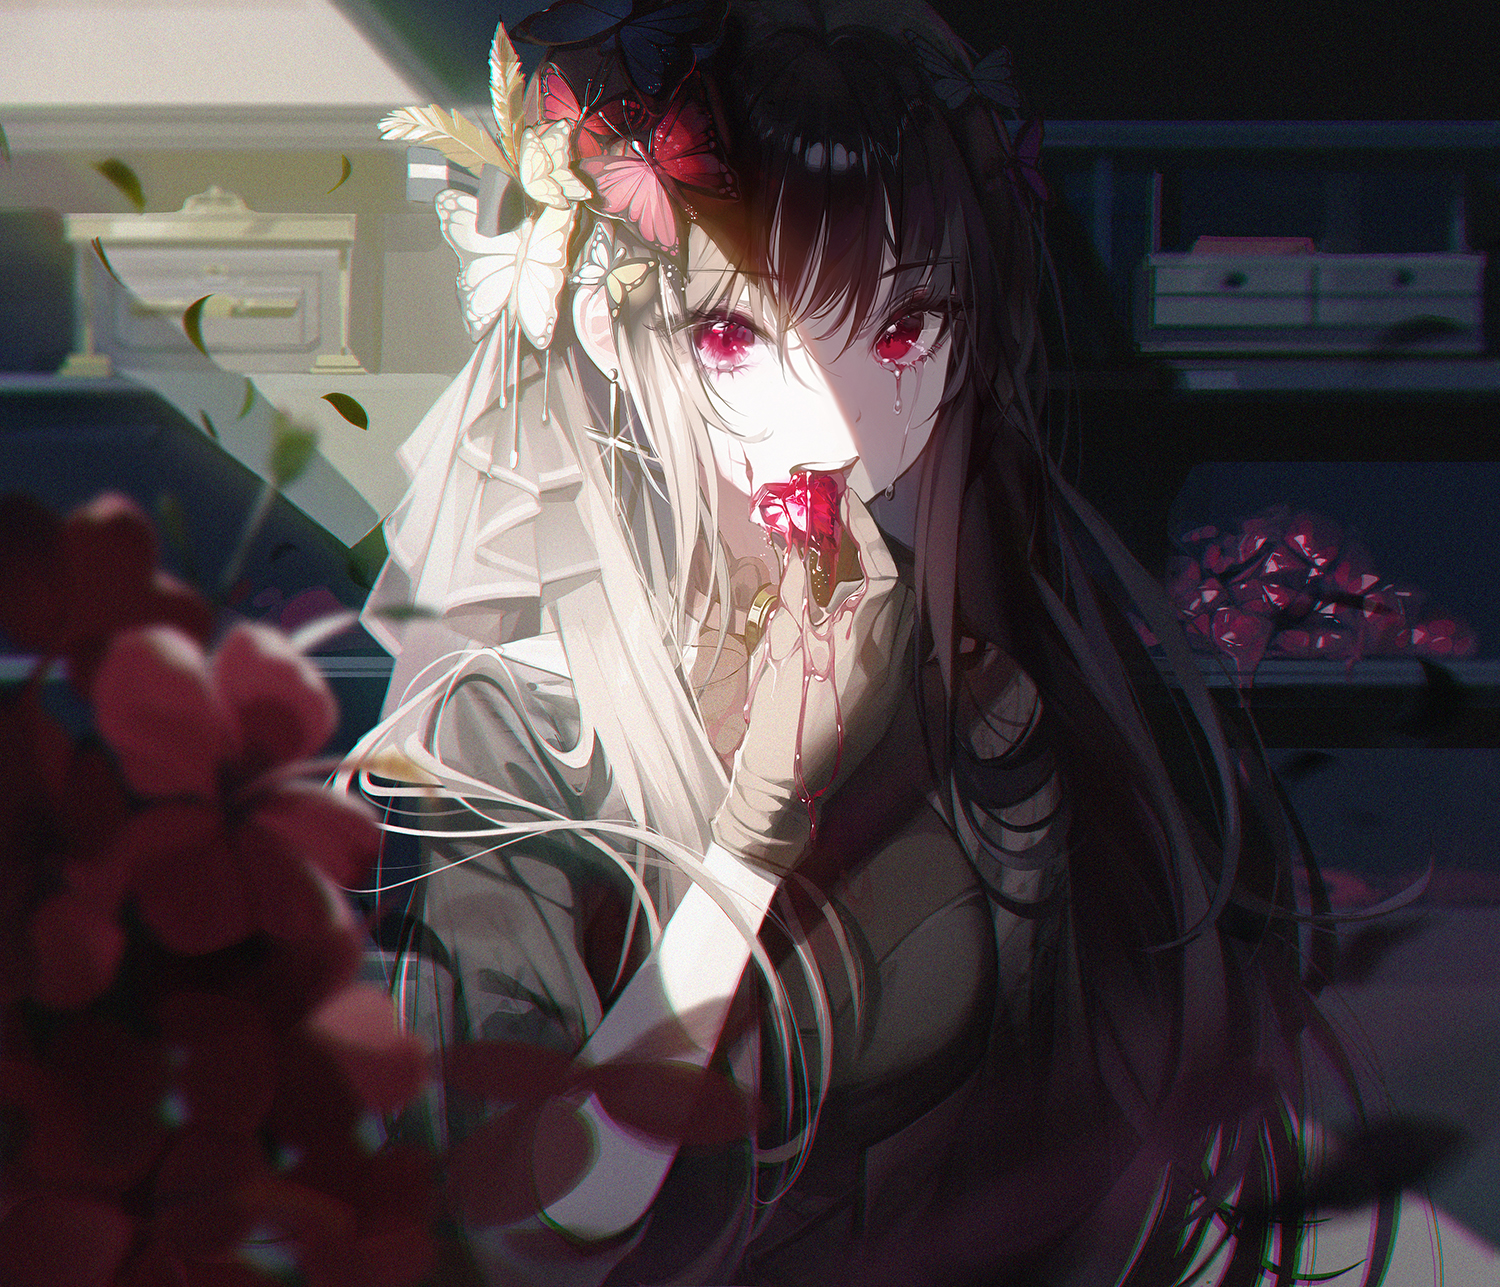 Anime Anime Girls Crying Red Eyes Butterflies Brunette Long Hair Flowers Feathers Gloves Depth Of Fi 1500x1287